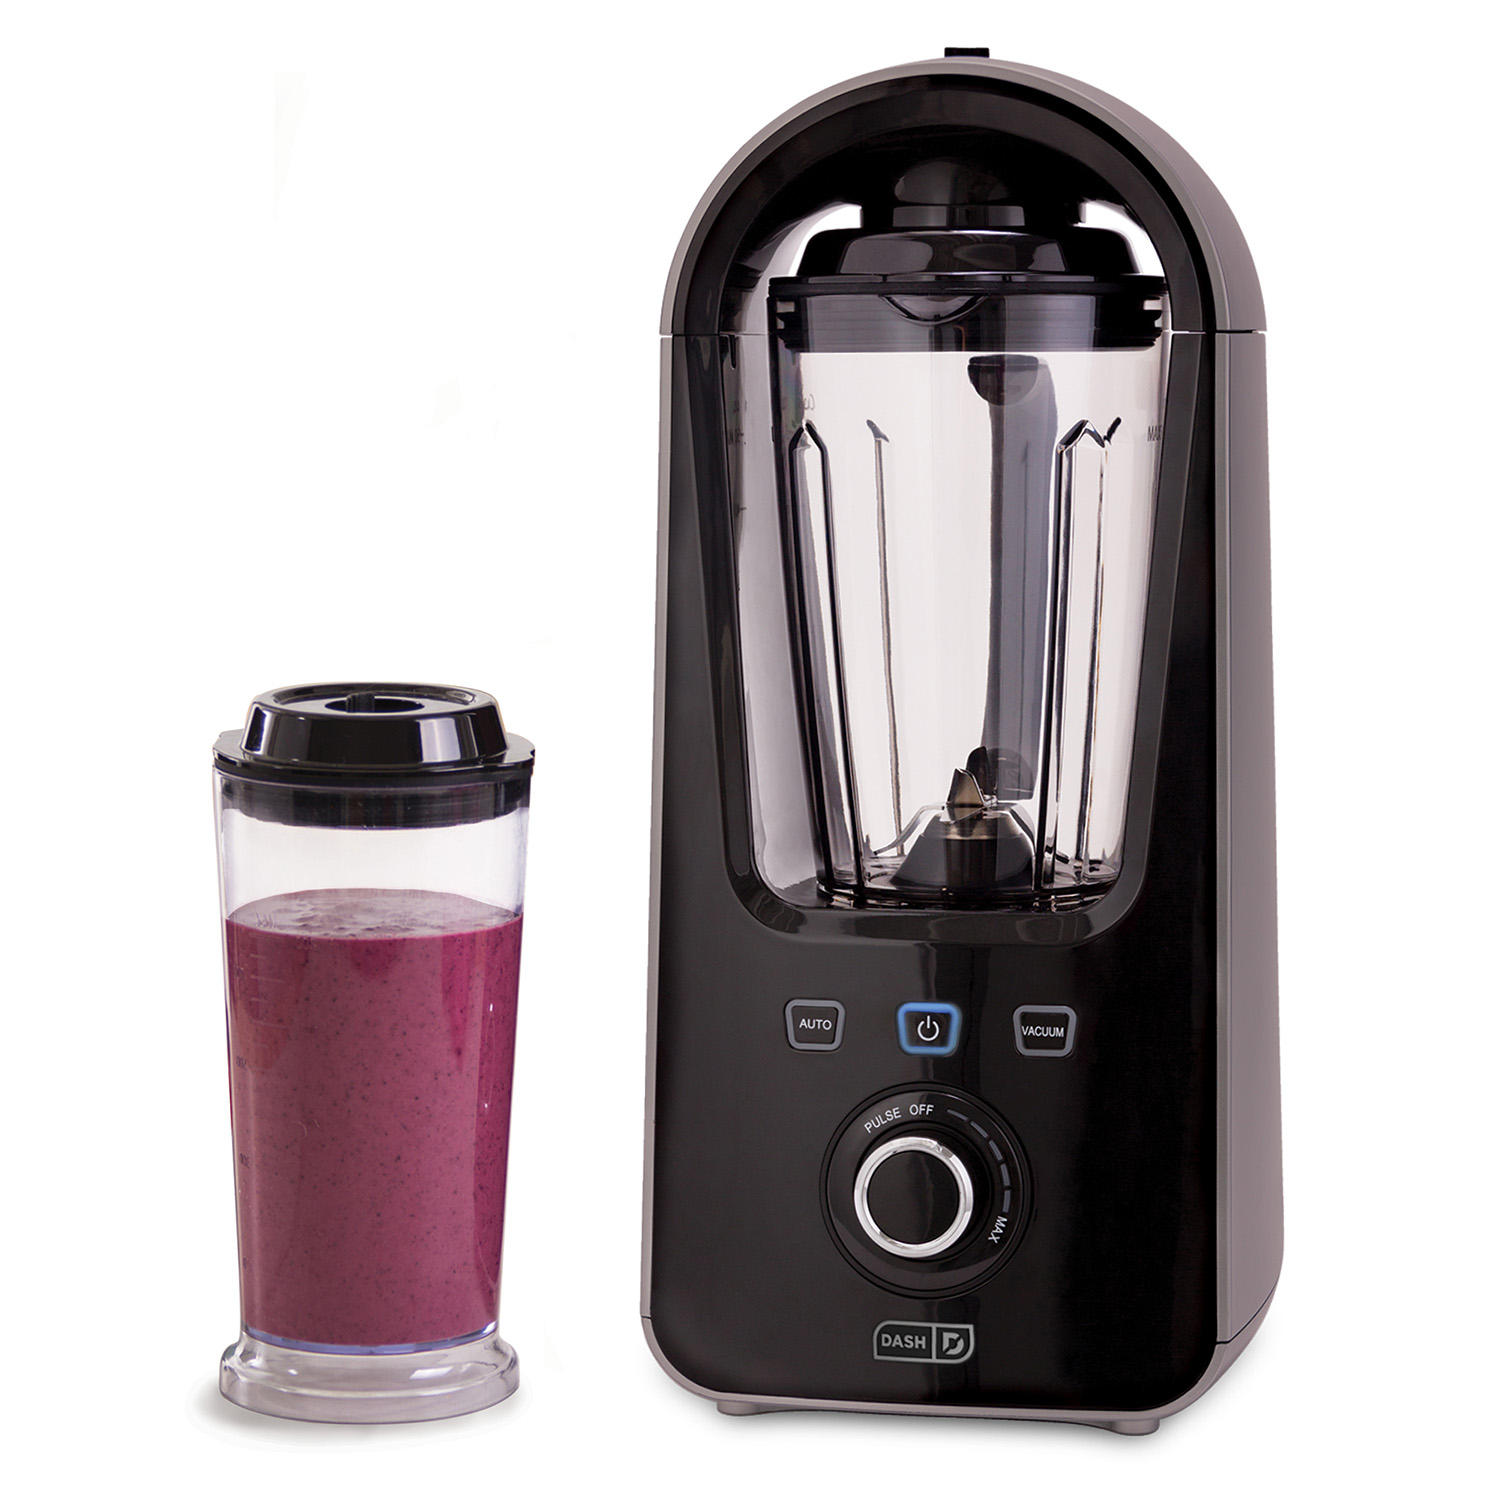 Dash Chef Series Cold Fusion Vacuum Blender